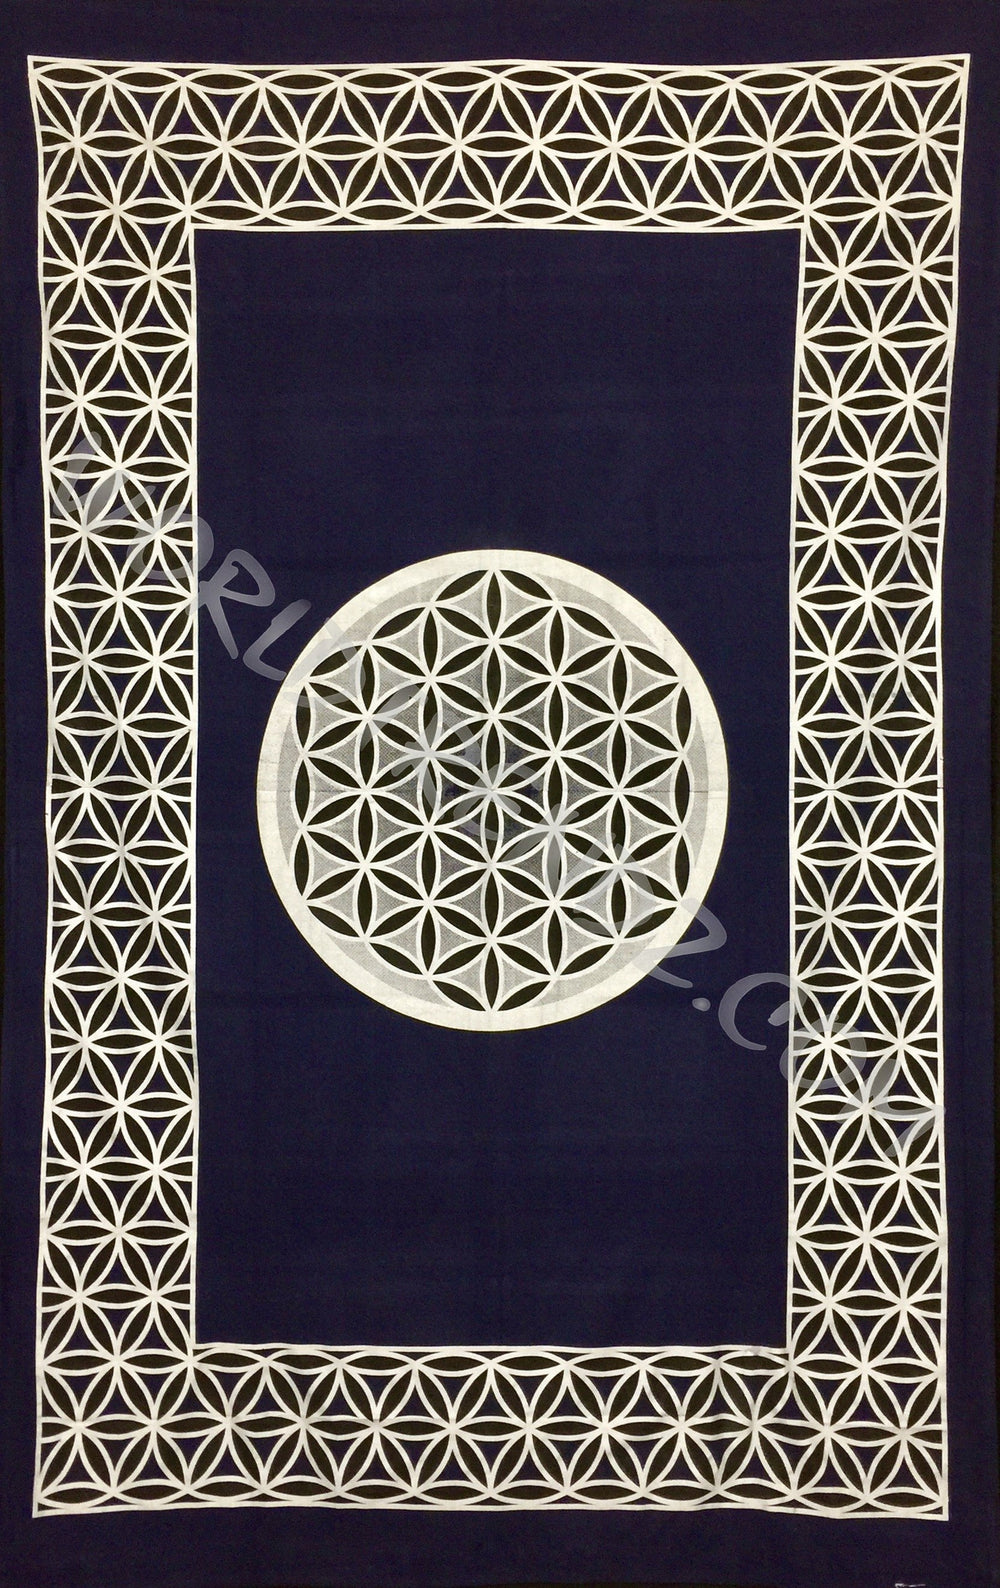 FLOWER OF LIFE TAPESTRY NAVY BLUE -SILVER-BLACK